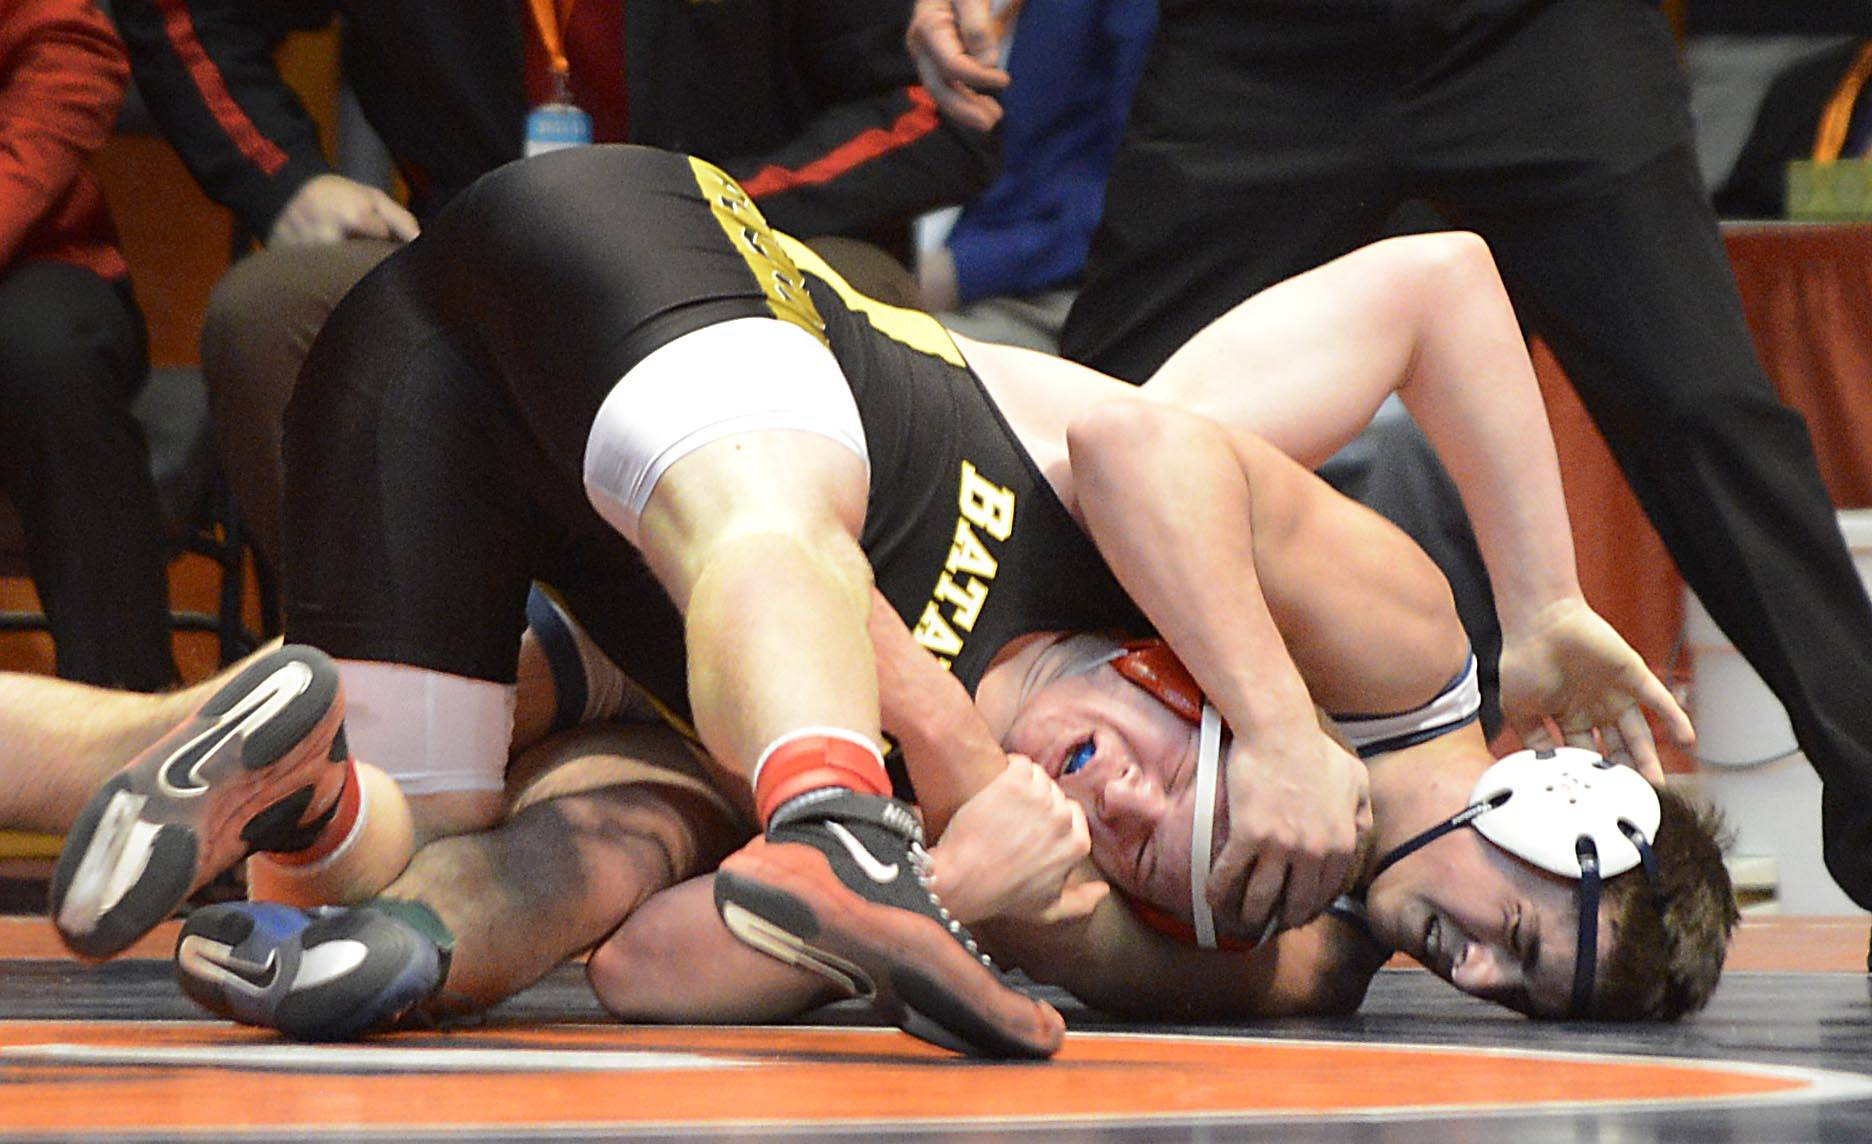 John Starks/jstarks@dailyherald.com Lake Park's Nico Daniello grabs the head of Batavia's Connor McKeehan Friday in quarterfinals of the 220-pound weight class of the 3A IHSA state tournament at the University of Illinois in Champaign.